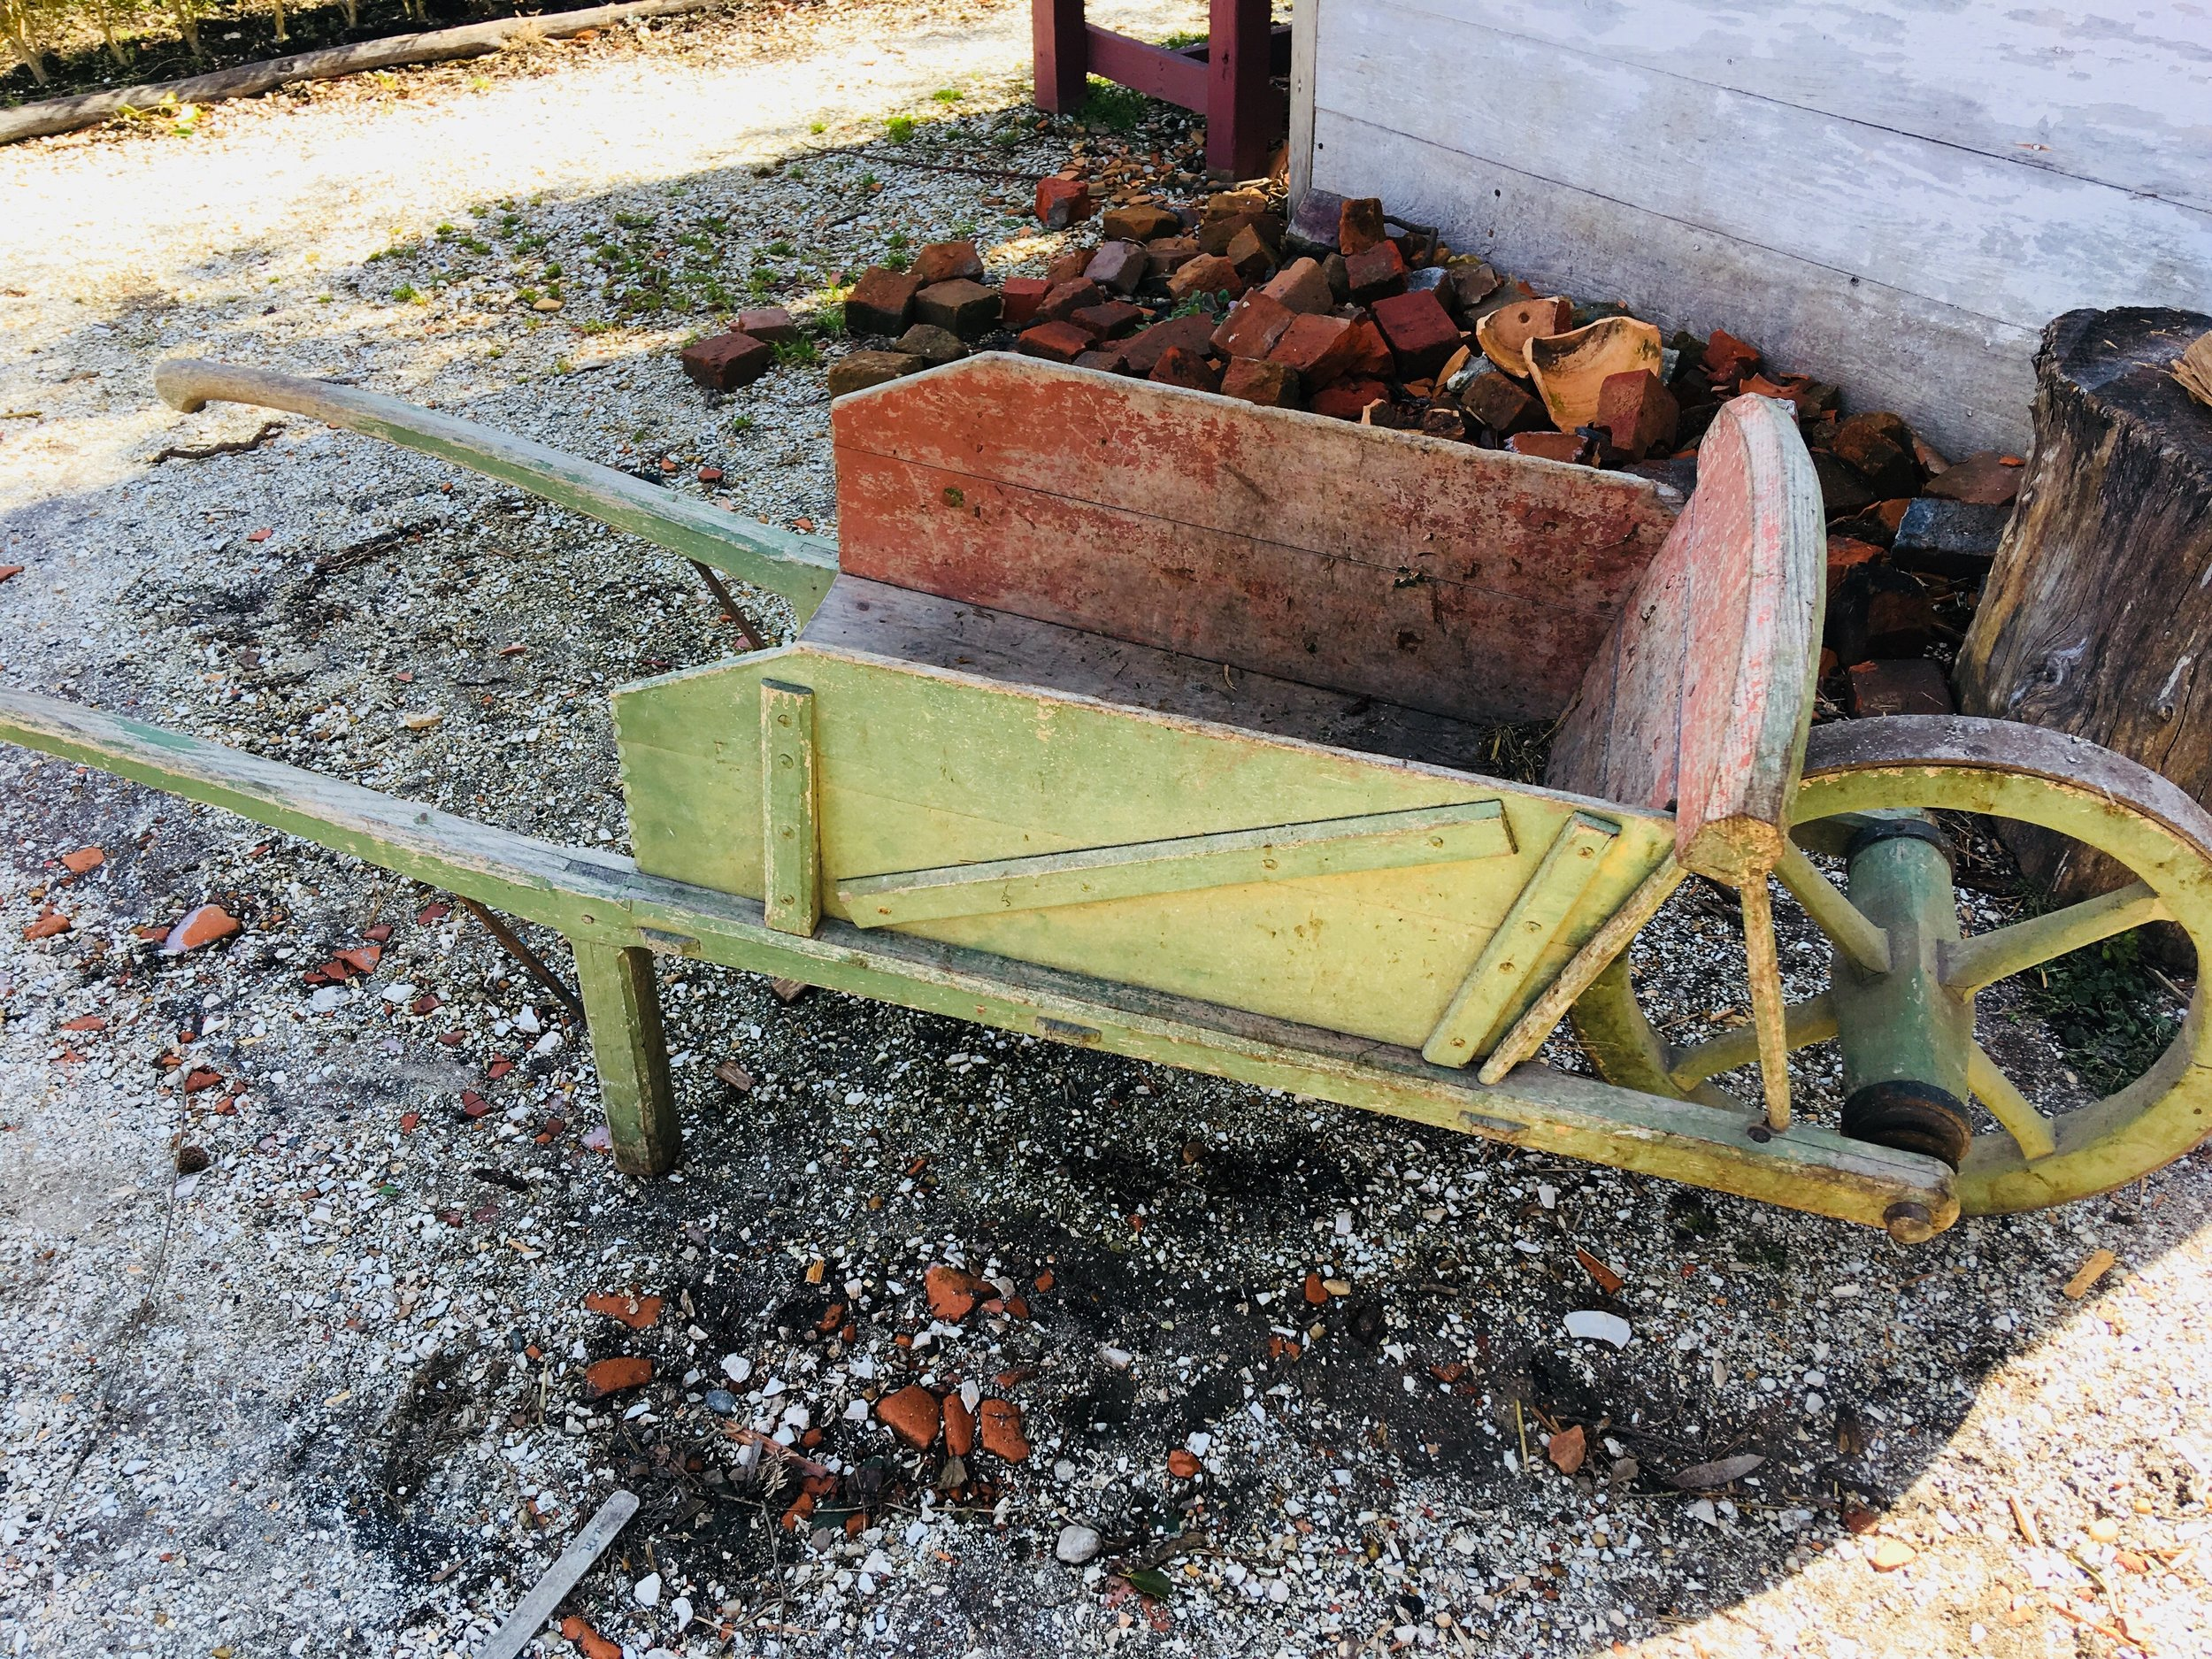 Sadly, this precious wheelbarrow was not for sale...and the gardeners were on the lookout, so I couldn't just (very casually) roll it away...!